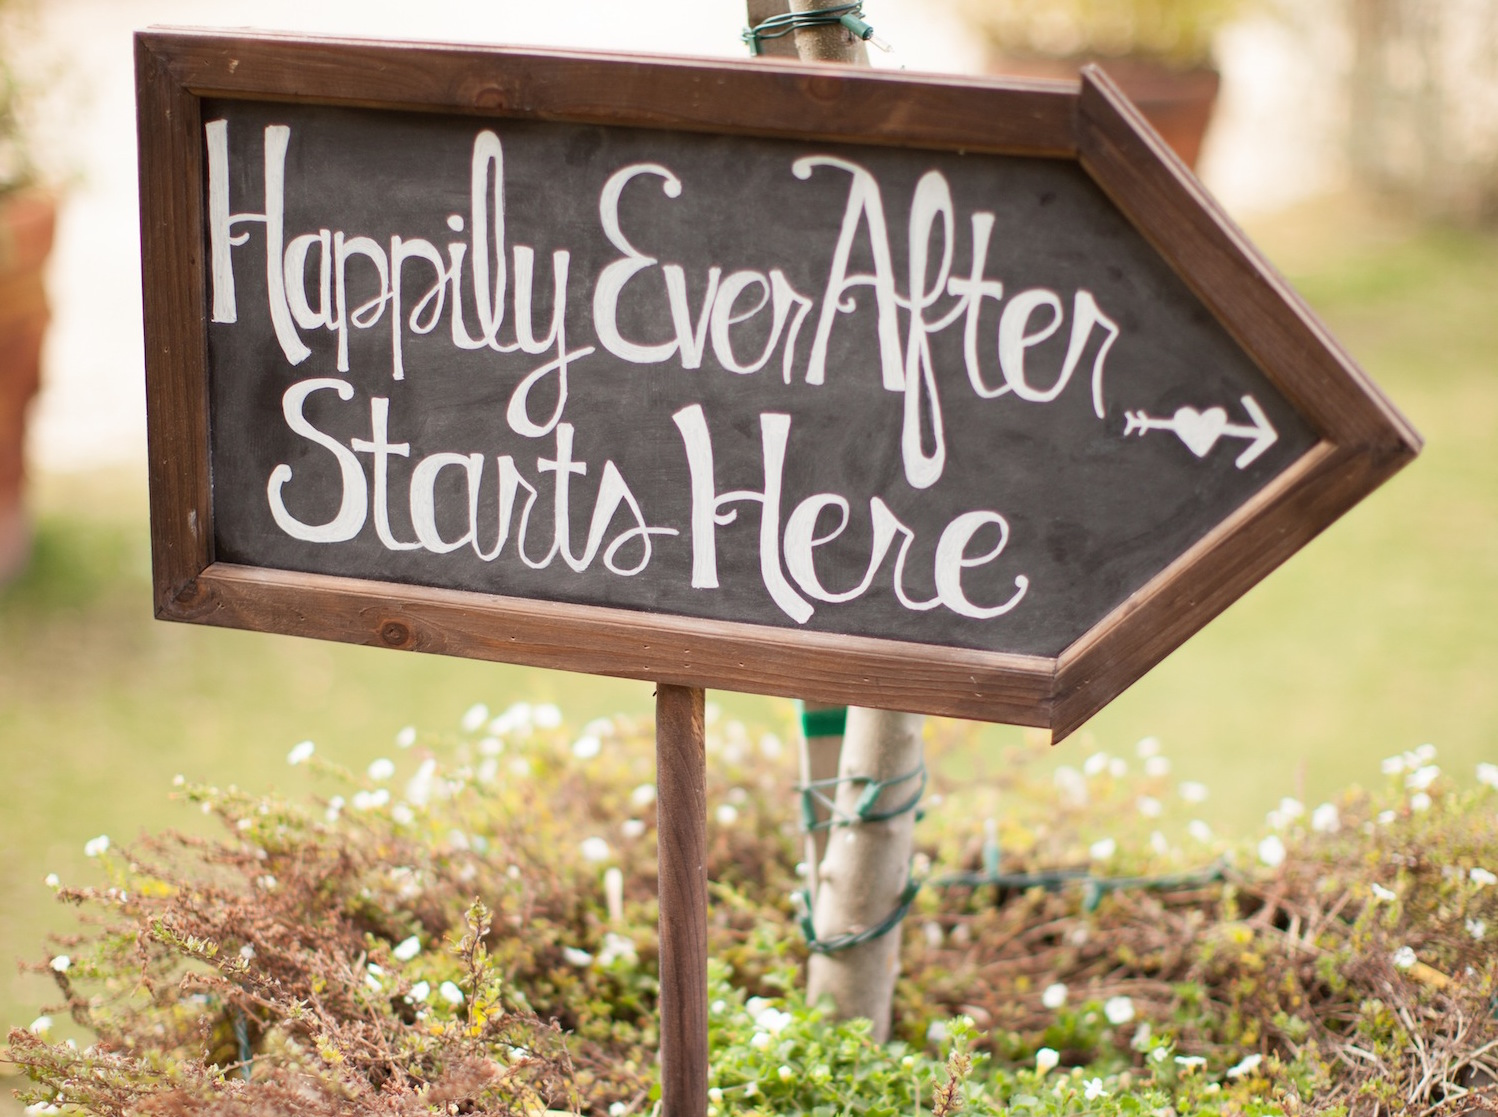 Happily Ever After Starts Here Sign at Wedding